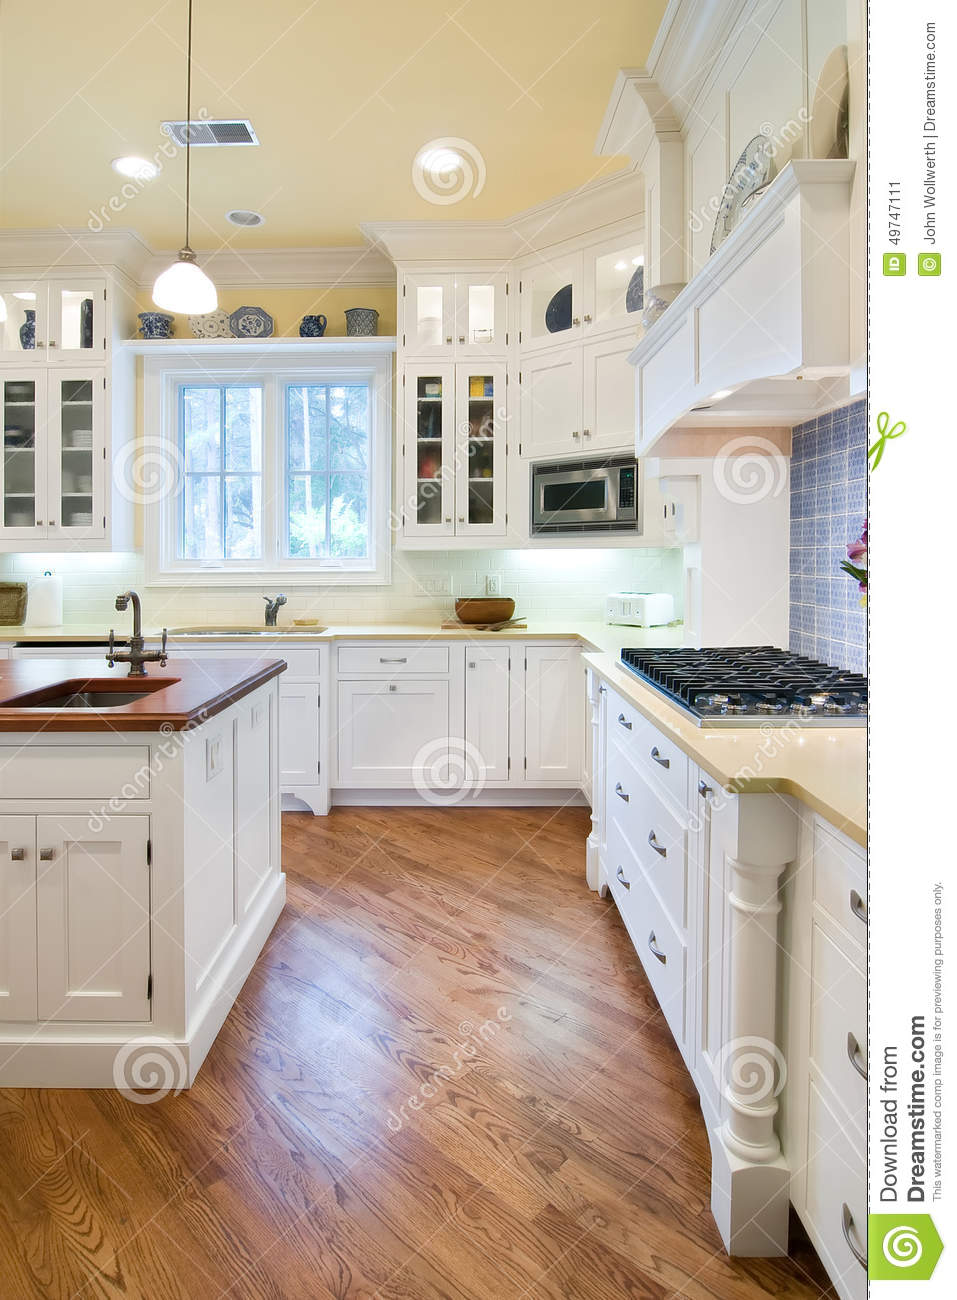 Expensive Kitchen Remodel Stock Image Image Of Drawer 49747111